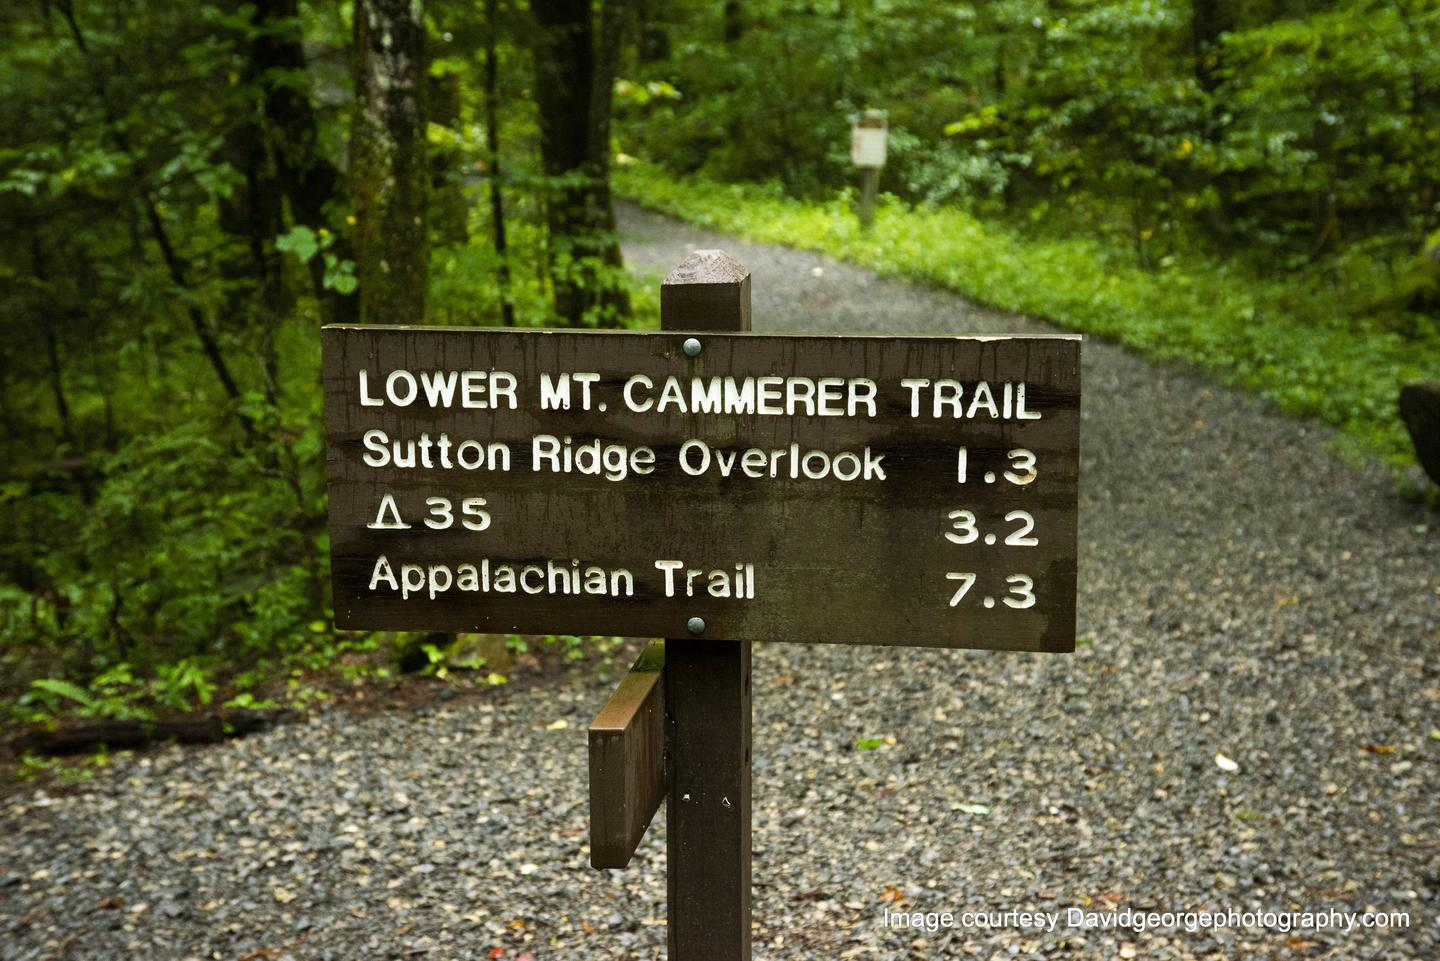 Lower Mount Cammerer trail head Also accessible from Cosby is Low gap, Gabe's mountain trail, Snake Den ridge, horse trail, nature trail, and Hen Wallow Falls.